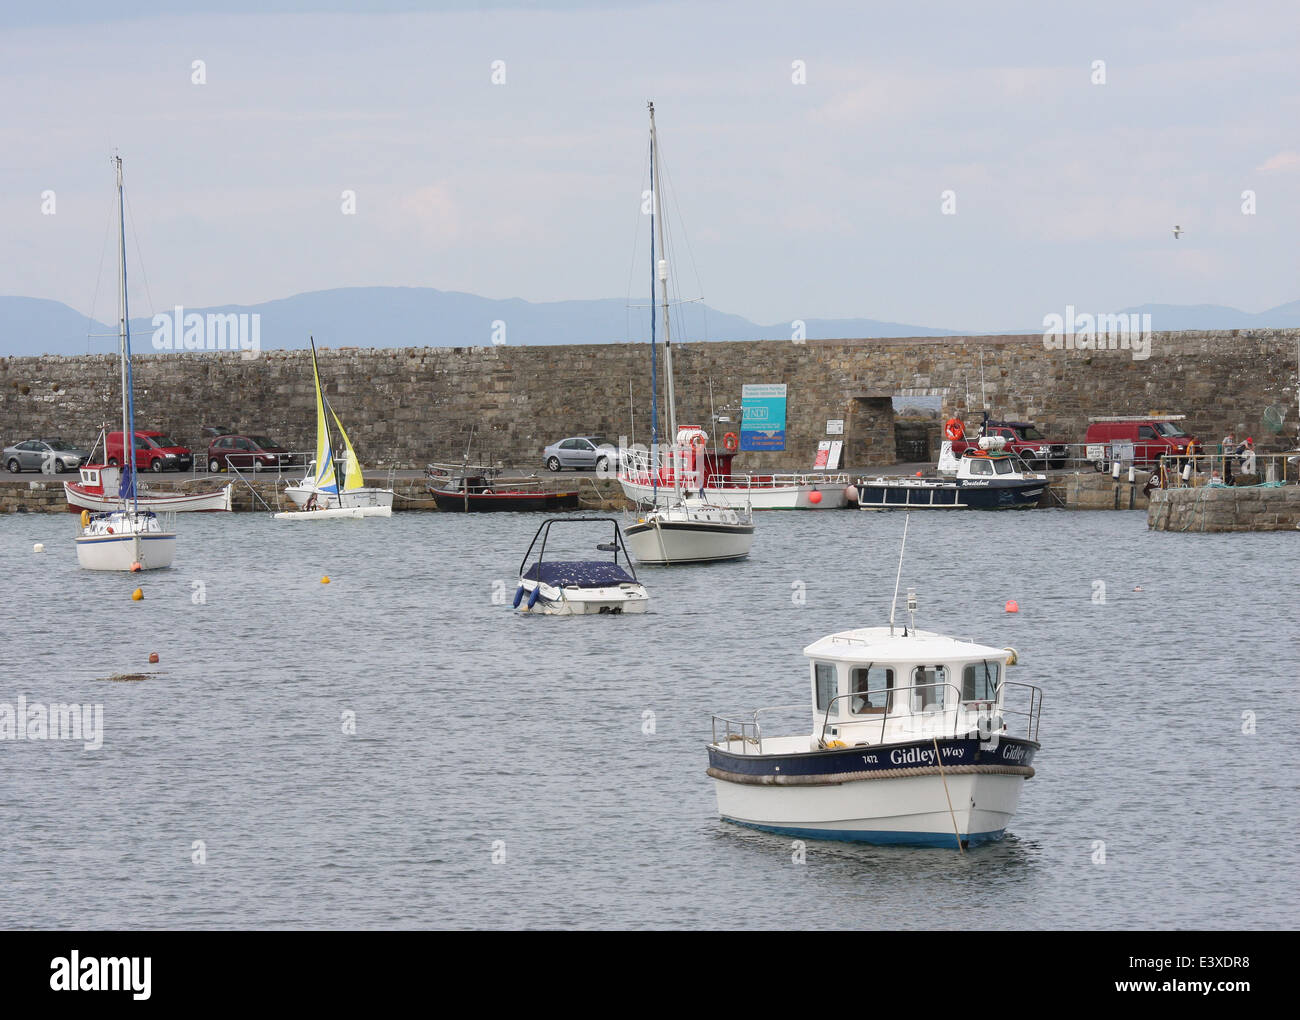 Fishing boats and pleasure craft in Mullaghmore harbour in County Sligo Ireland Stock Photo